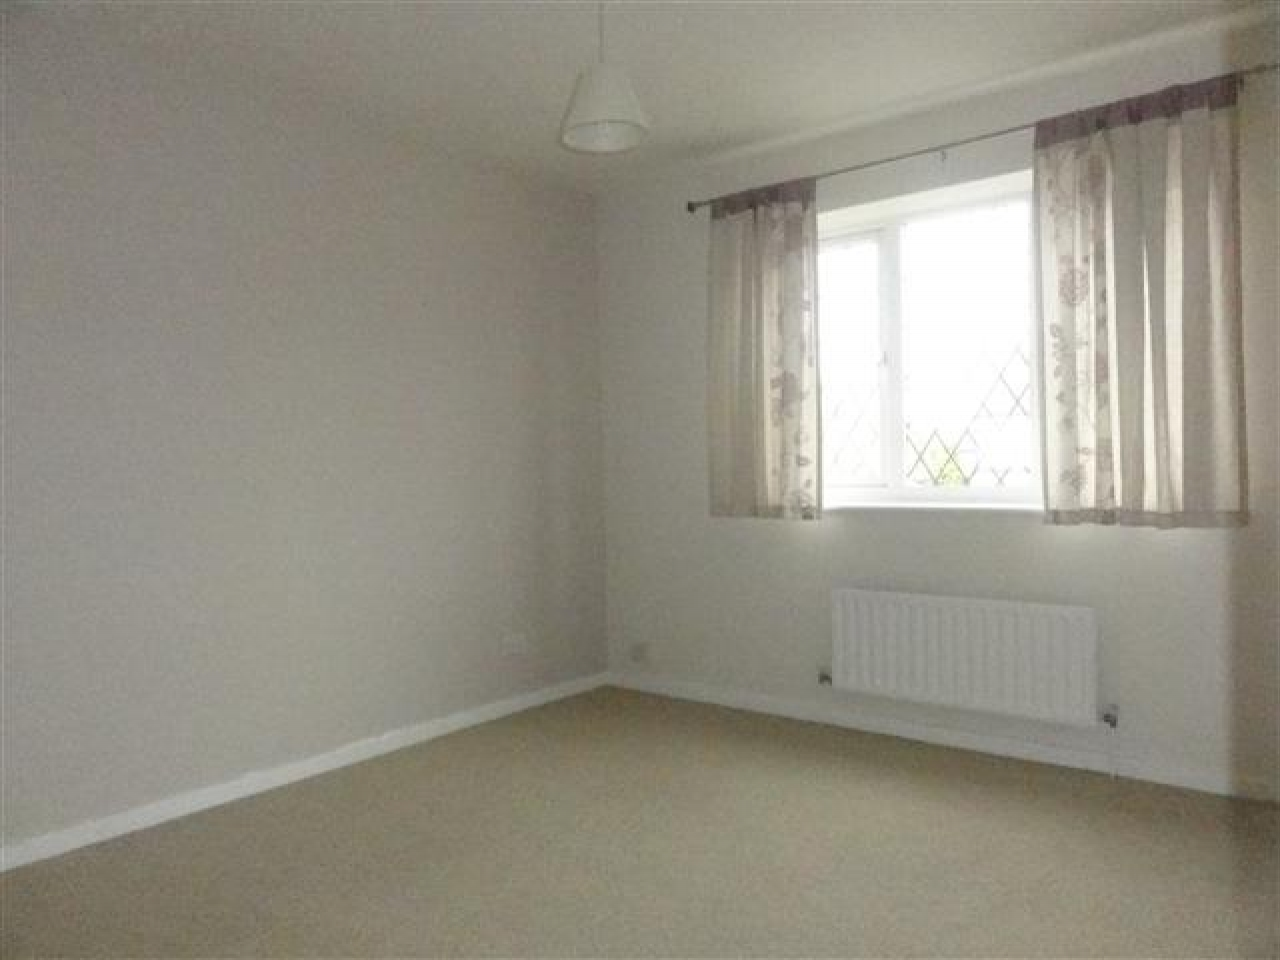 2 Bed Semi-detached House For Sale - Photograph 4